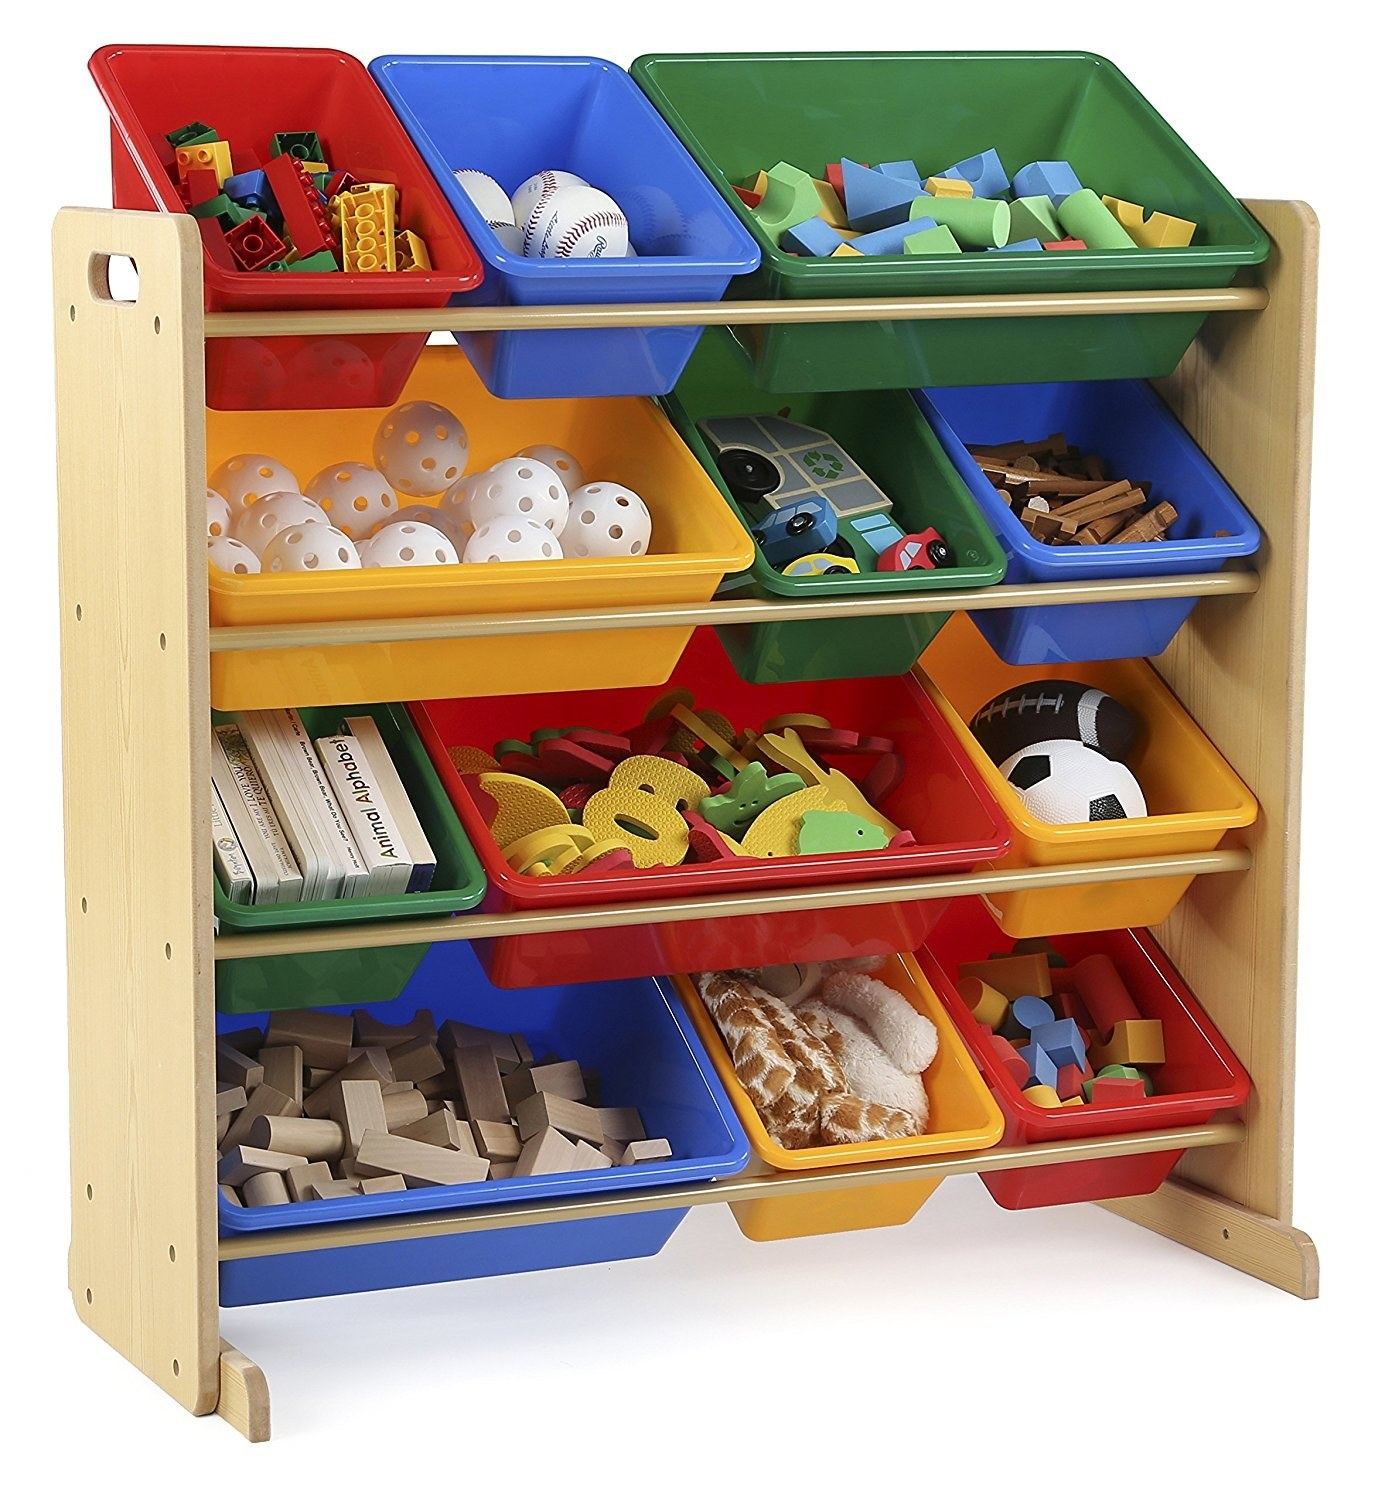 The organizer with four shelves and different sized colored bins on each shelf with toys in them